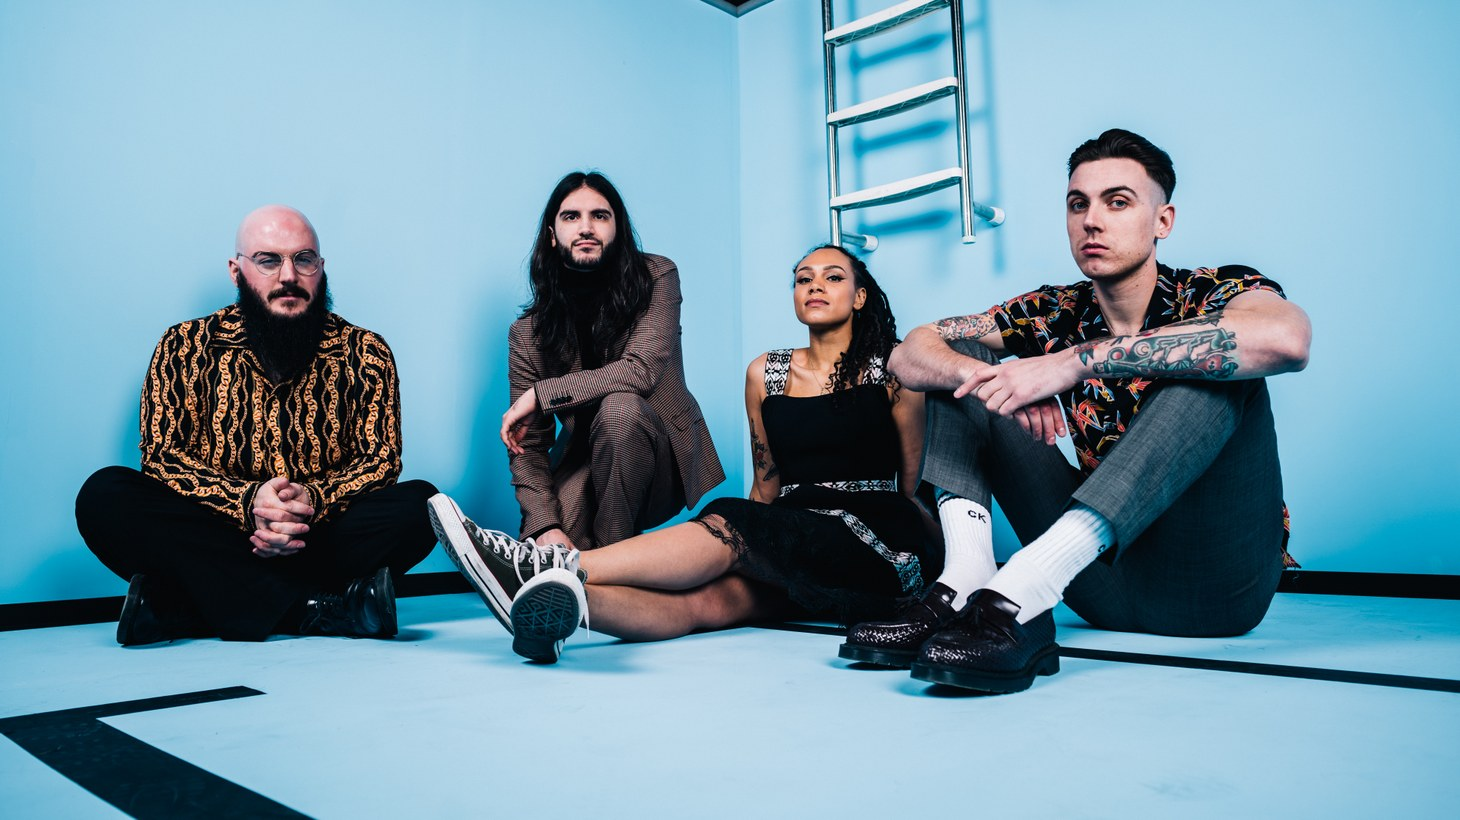 """Pushing the boundaries of """"tropical punk,"""" East London ska-core band The Skints are back with an anticipated fourth album. Get moving to the sounds of """"Restless"""" featuring Protoje."""